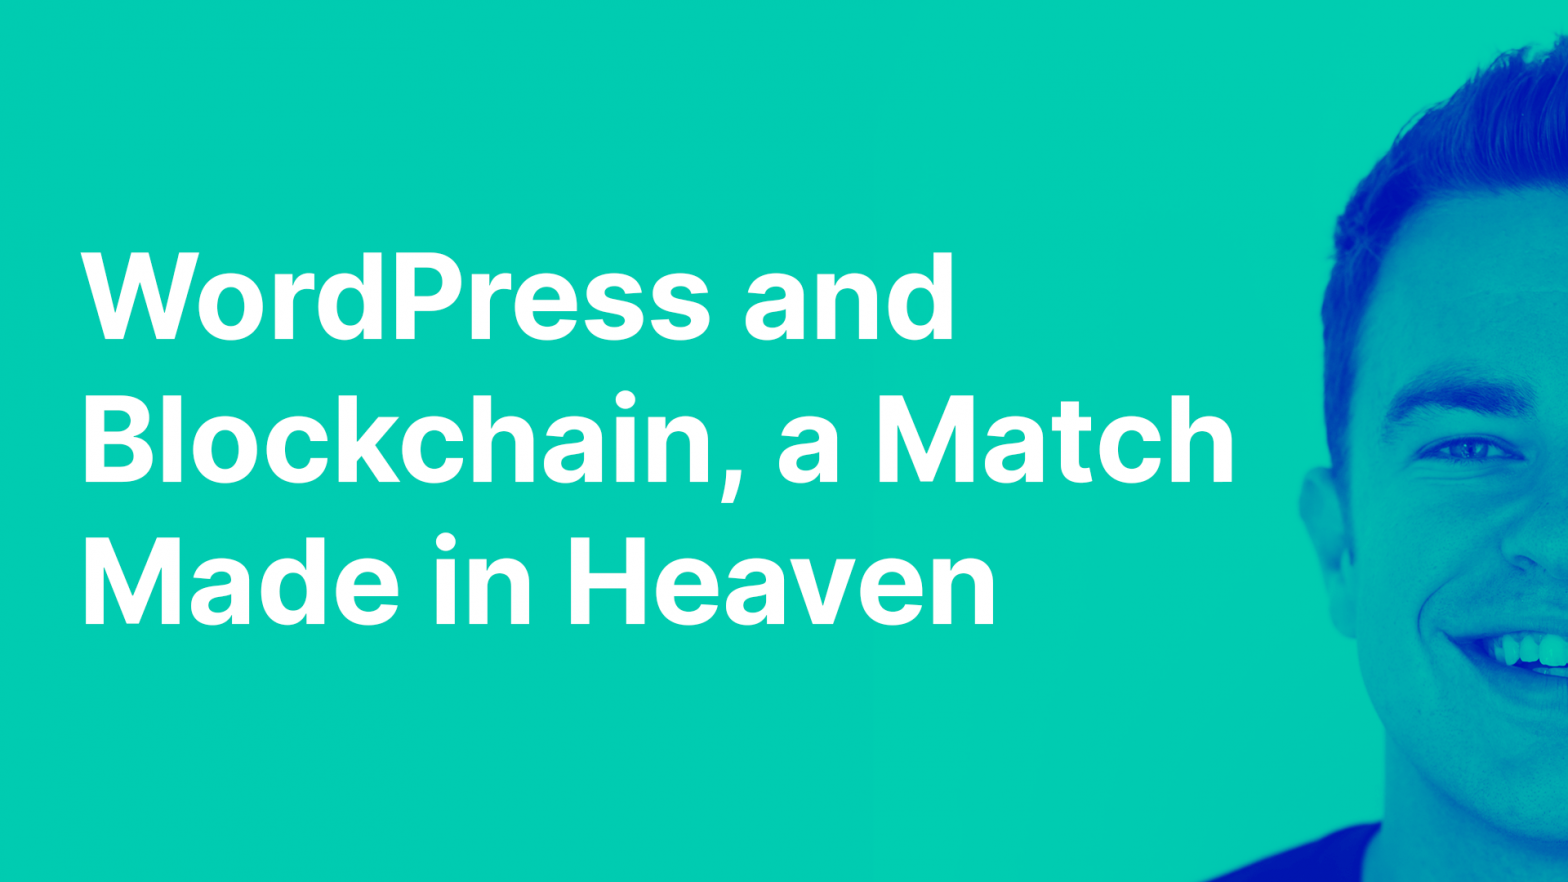 WordPress and Blockchain, a Match Made in Heaven